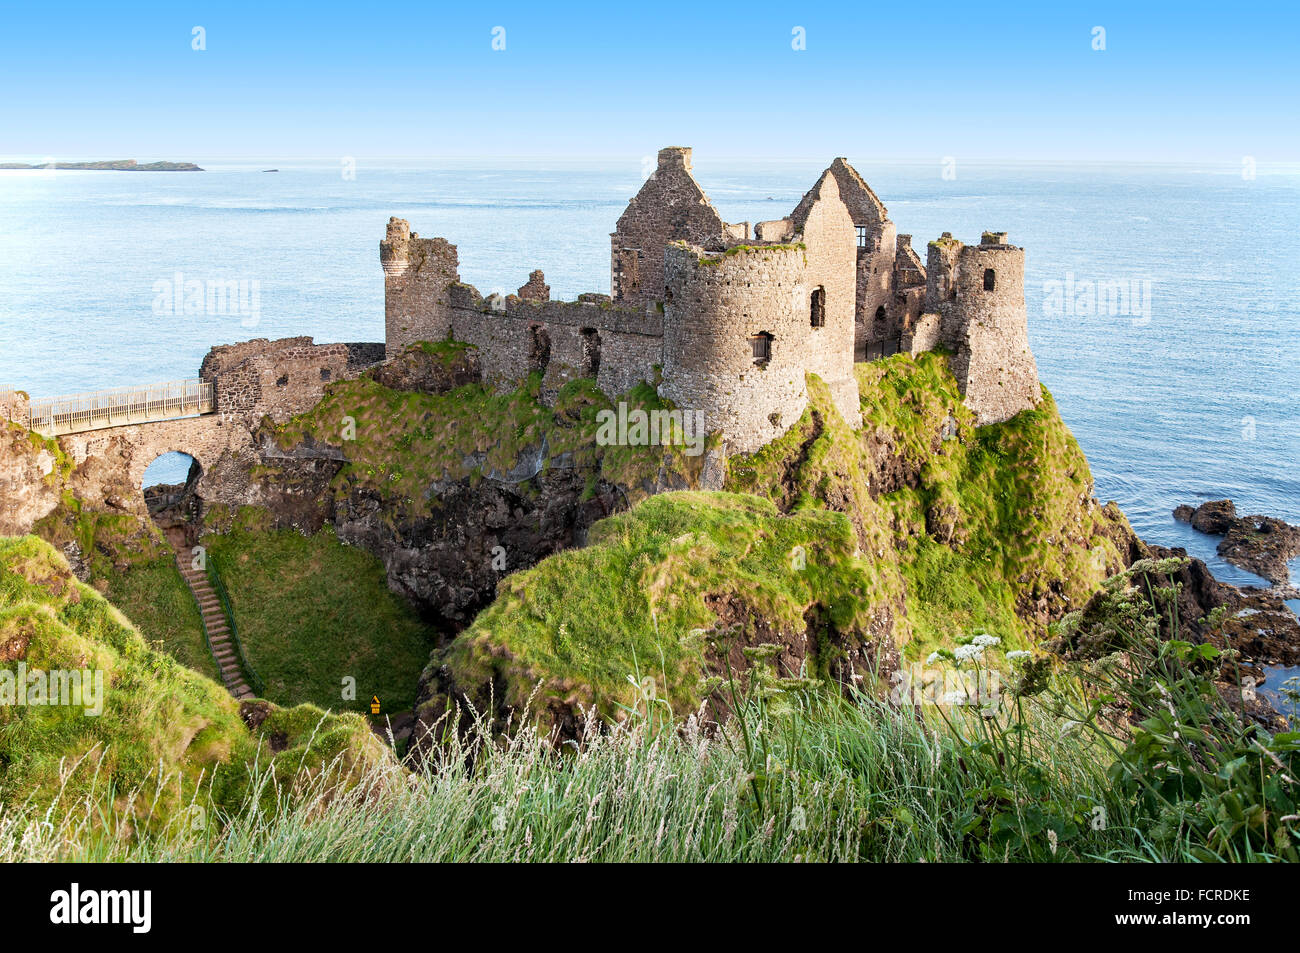 Ruins of medieval Dunluce Castle, County Antrim, Northern Ireland, at sunrise light - Stock Image